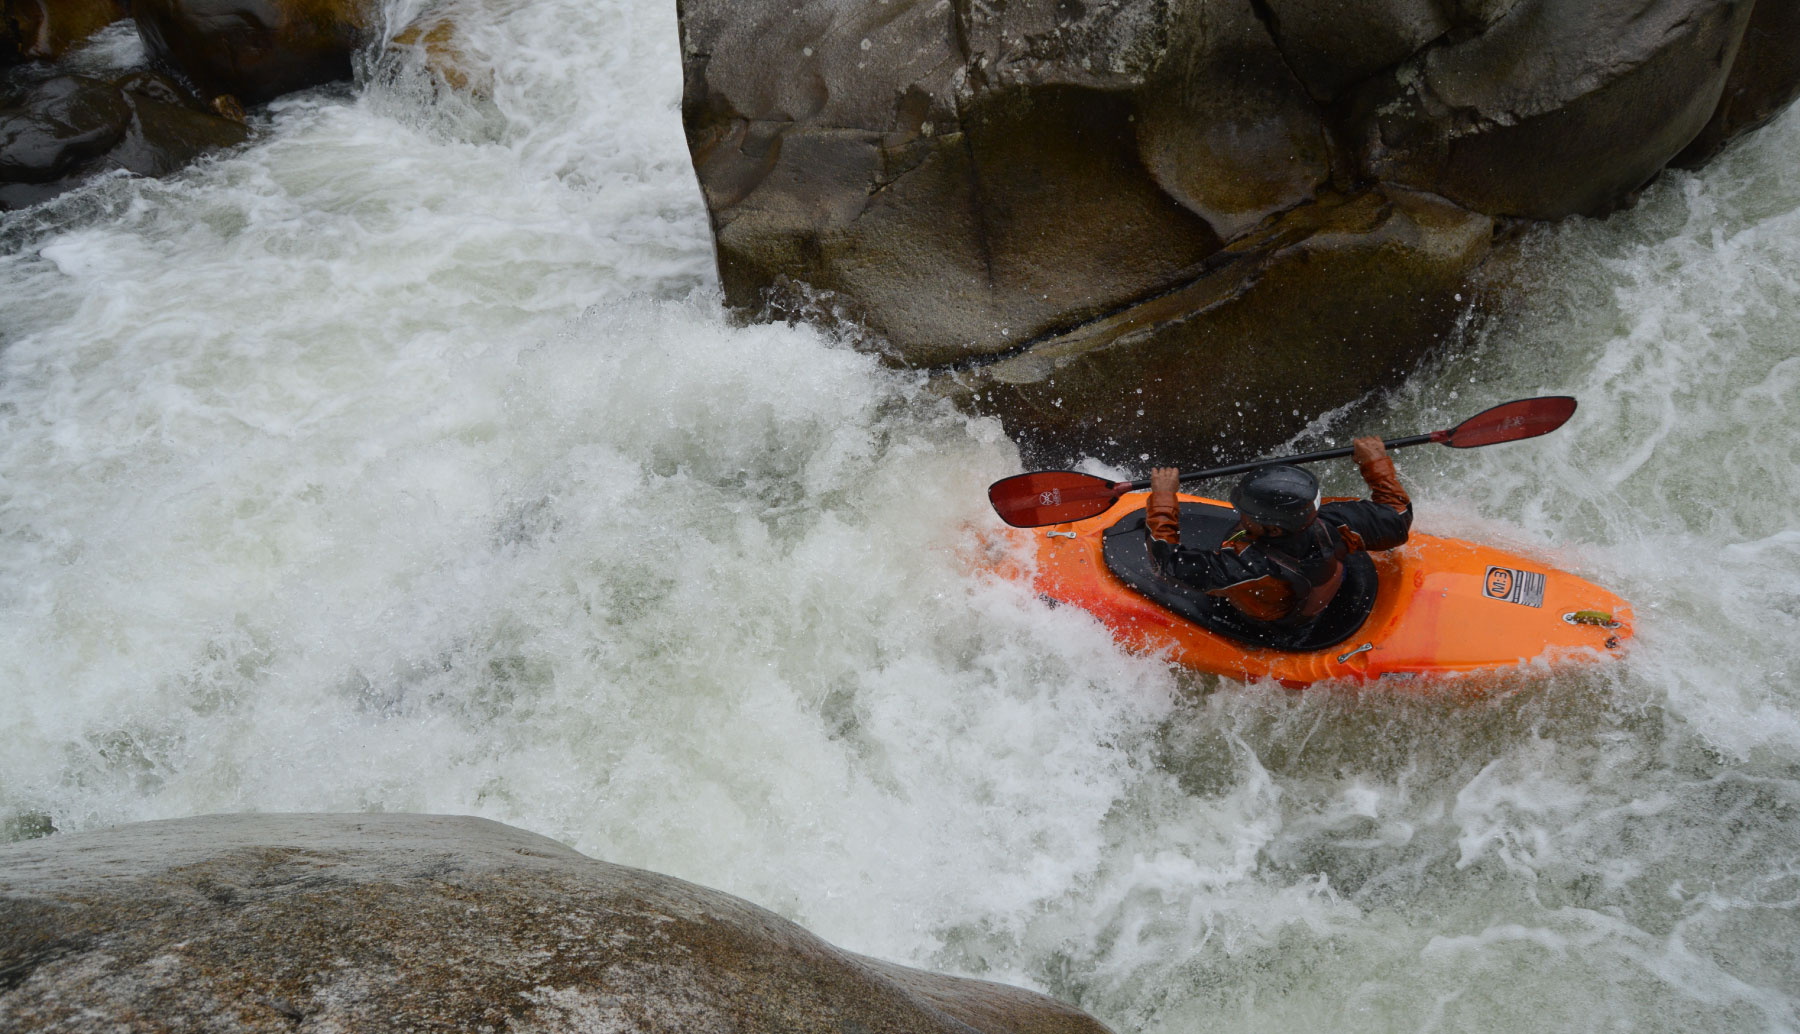 Kayak adventure some rapids